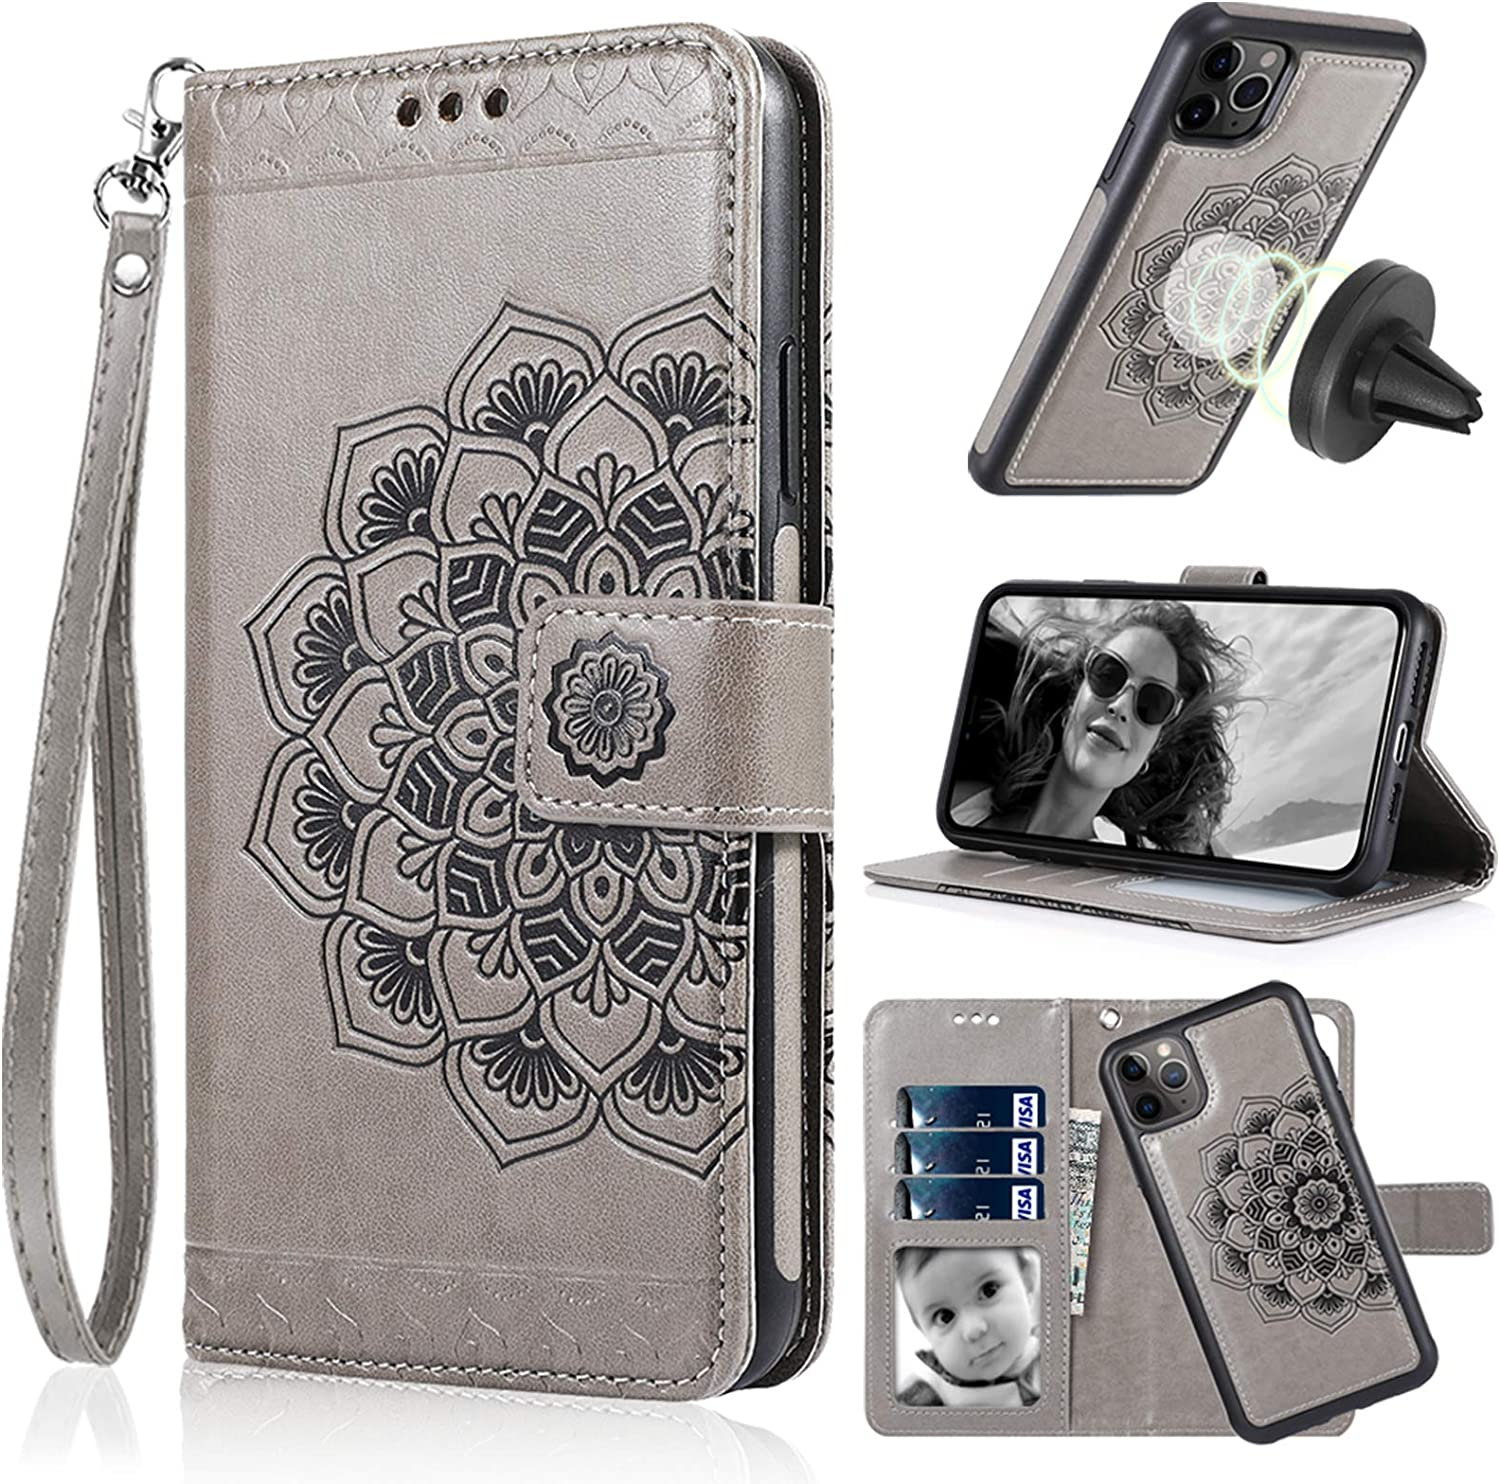 iPhone 11 Pro 5.8/'/' Protective iPhone 11 Pro Back Cover Case Genuine Leather Magnetic Detachable Protective Wallet Case with Card Slots